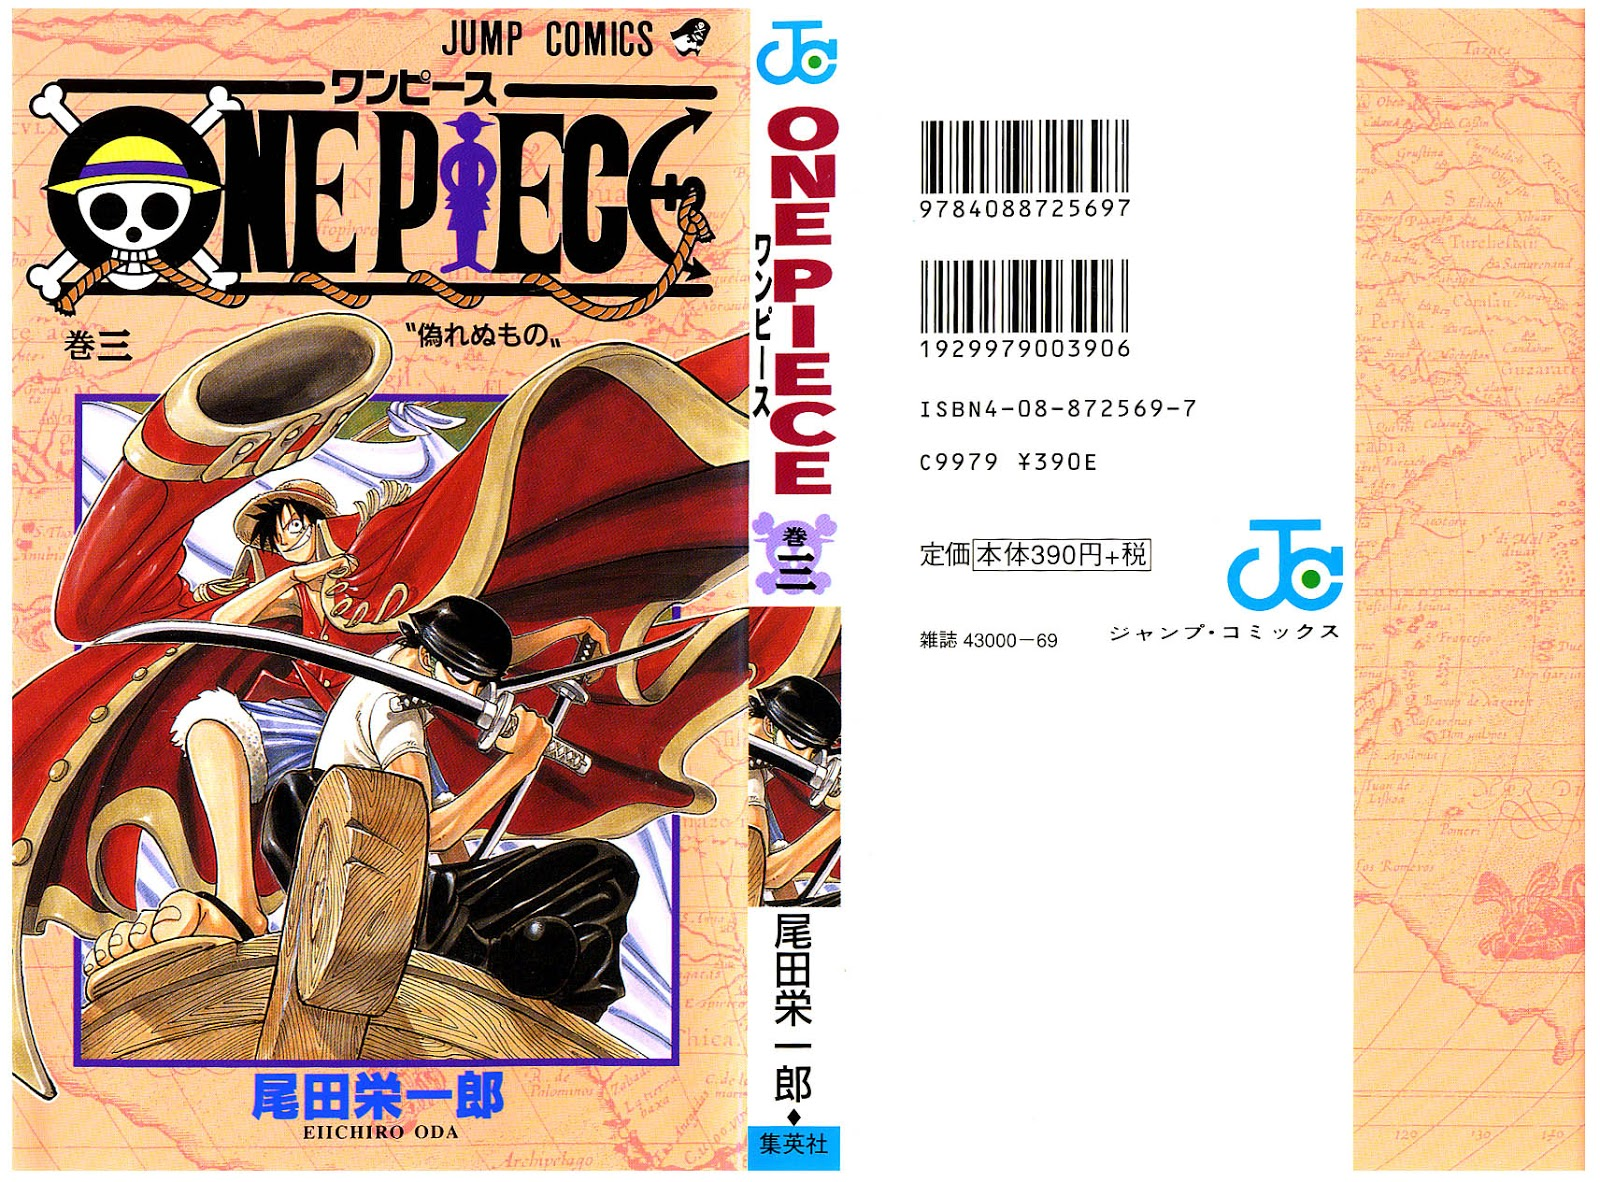 One piece chapter 77-86